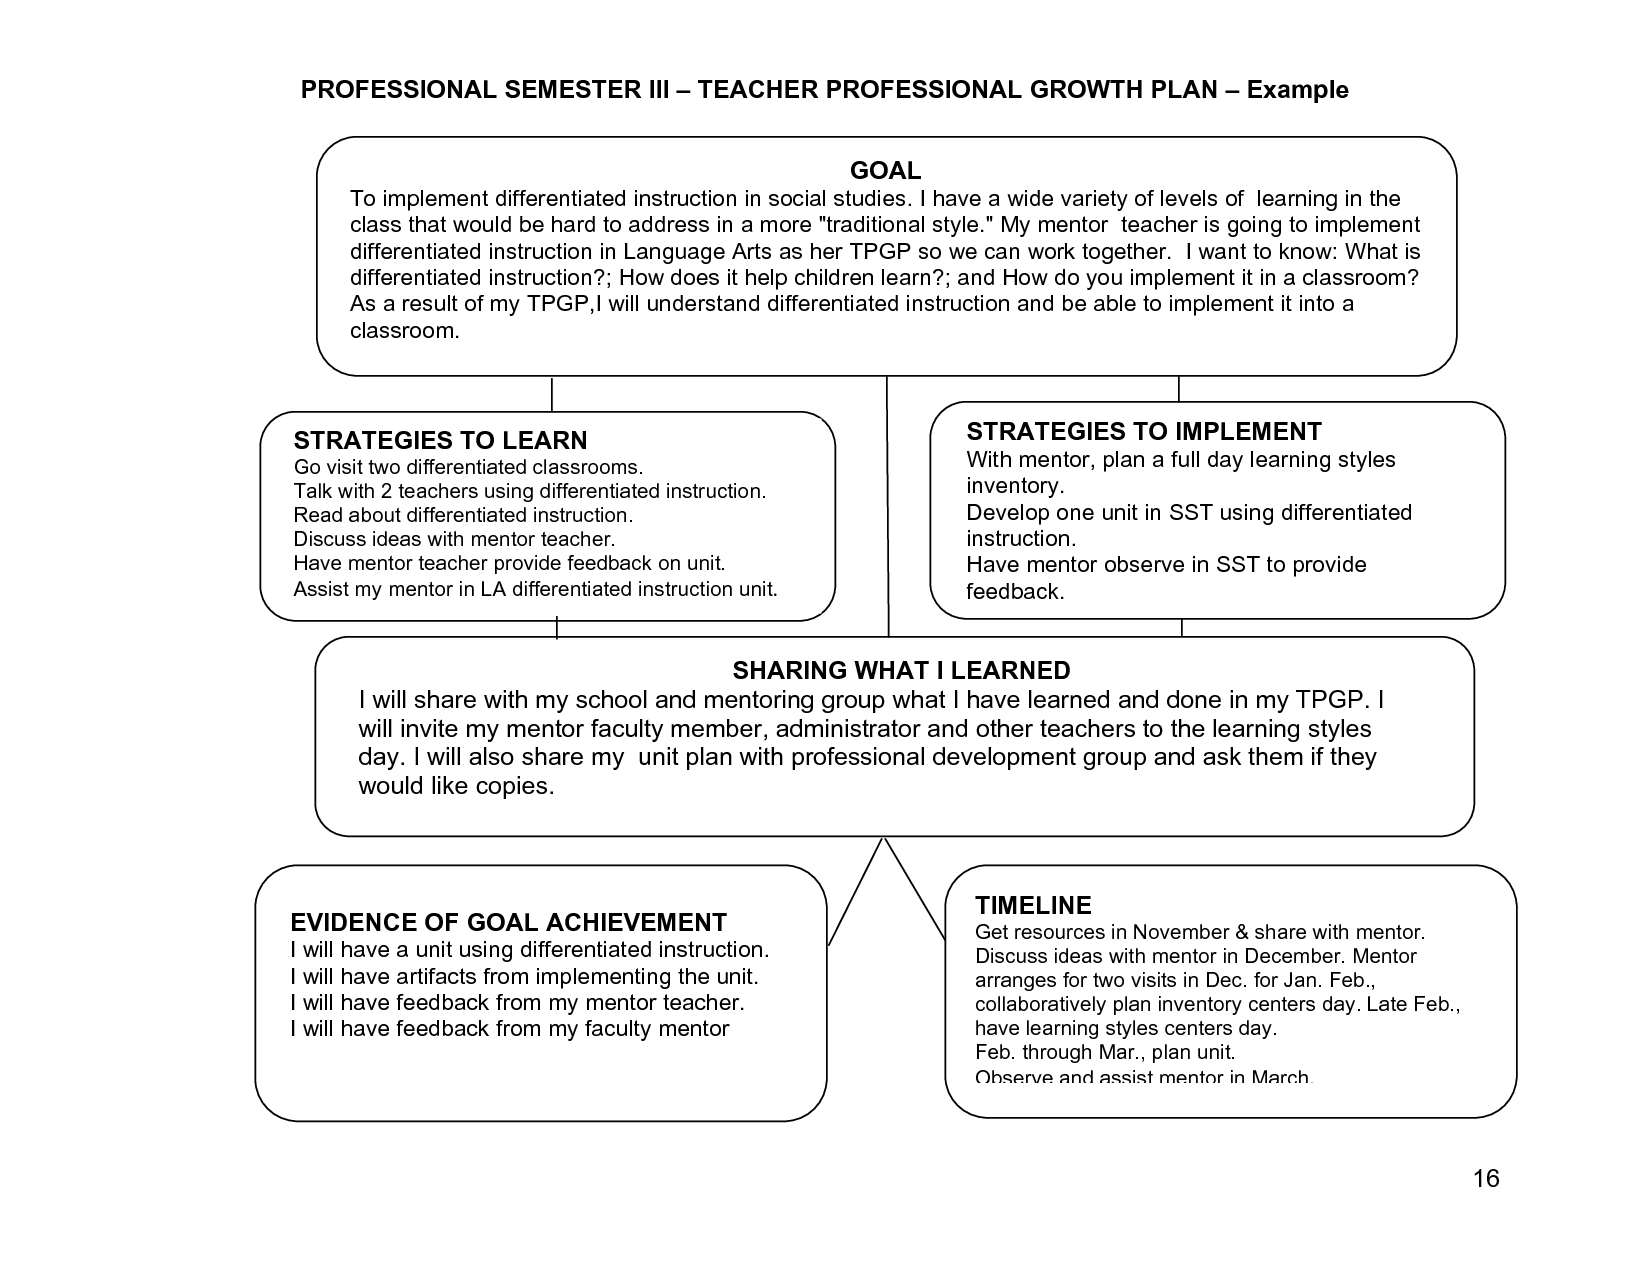 Learning Plans Or Goals For Teachers Semester Iii Teacher Professional Growth Plan Example Goal